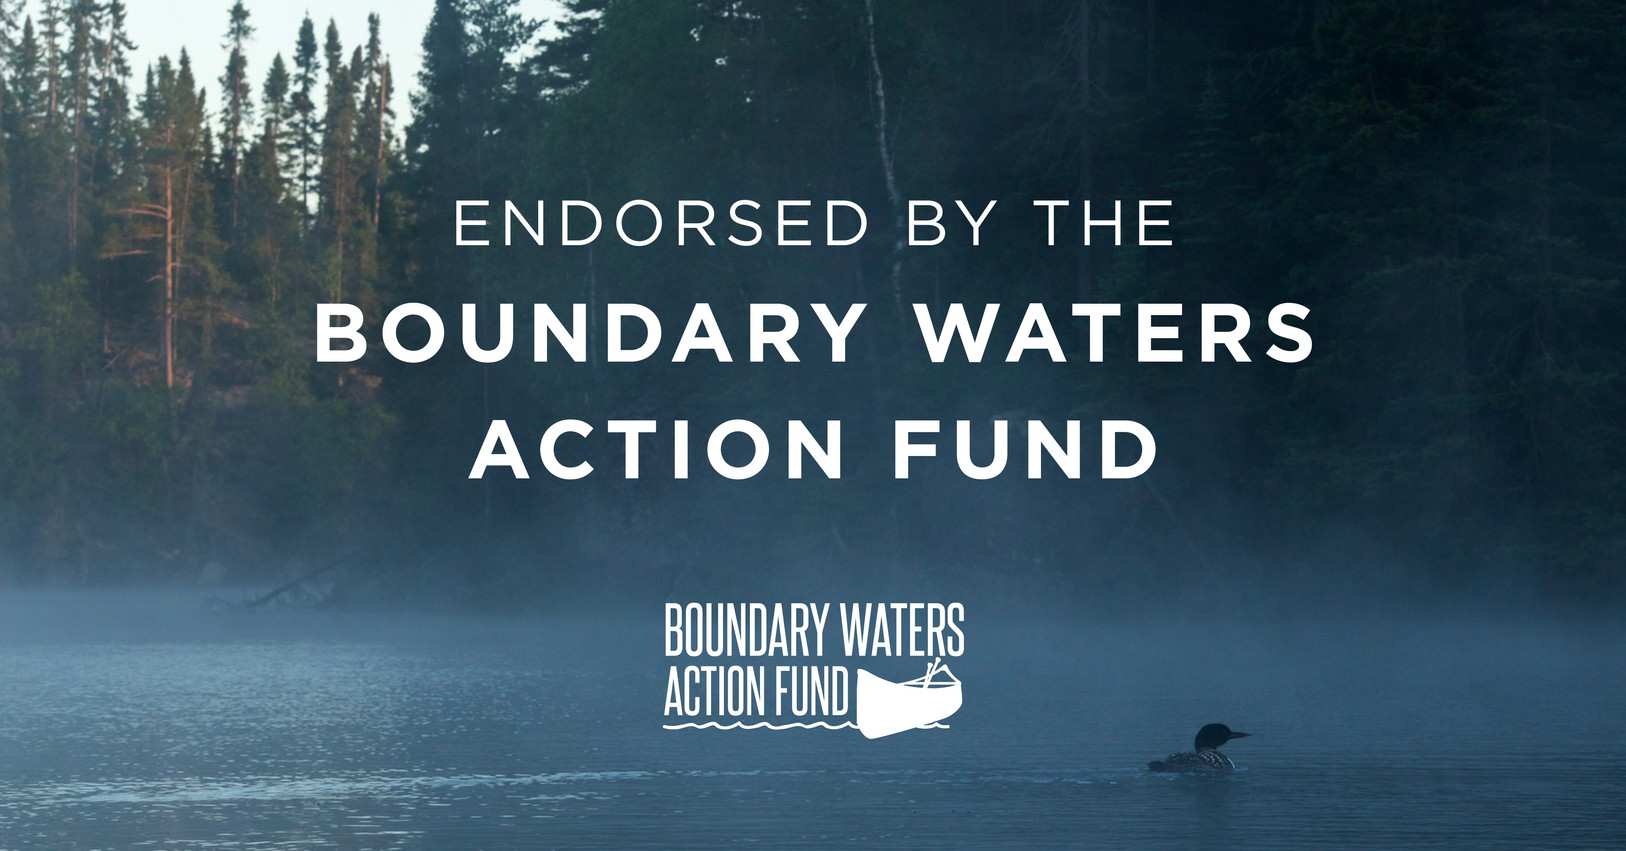 BoundaryWatersActionFund.jpg